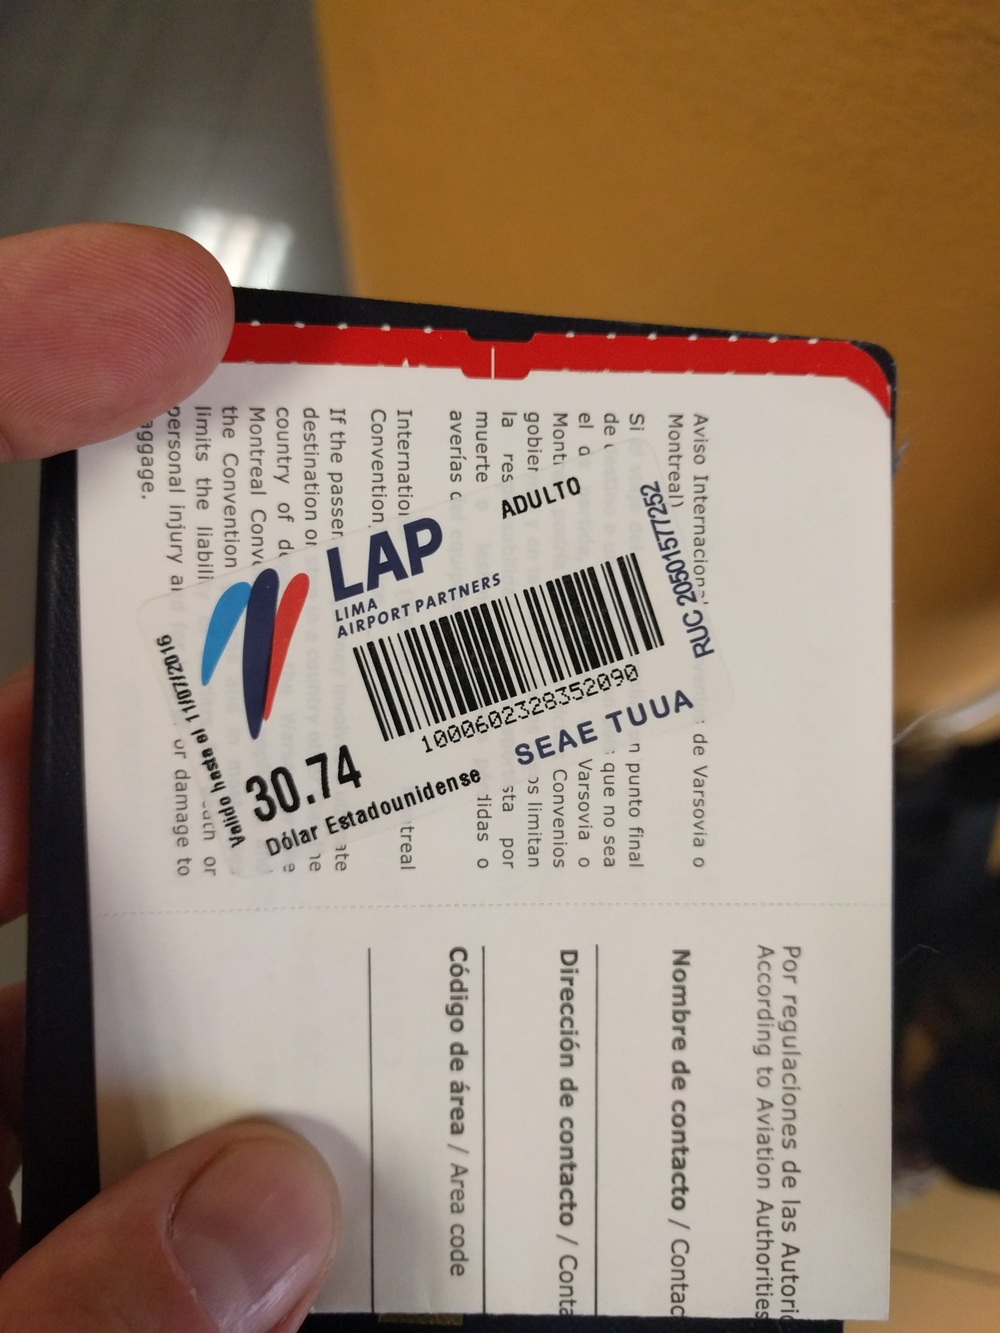 If you exit the airport during a long layover in Lima, you'll have to pay $30.74 US at the LAP desk next to security.